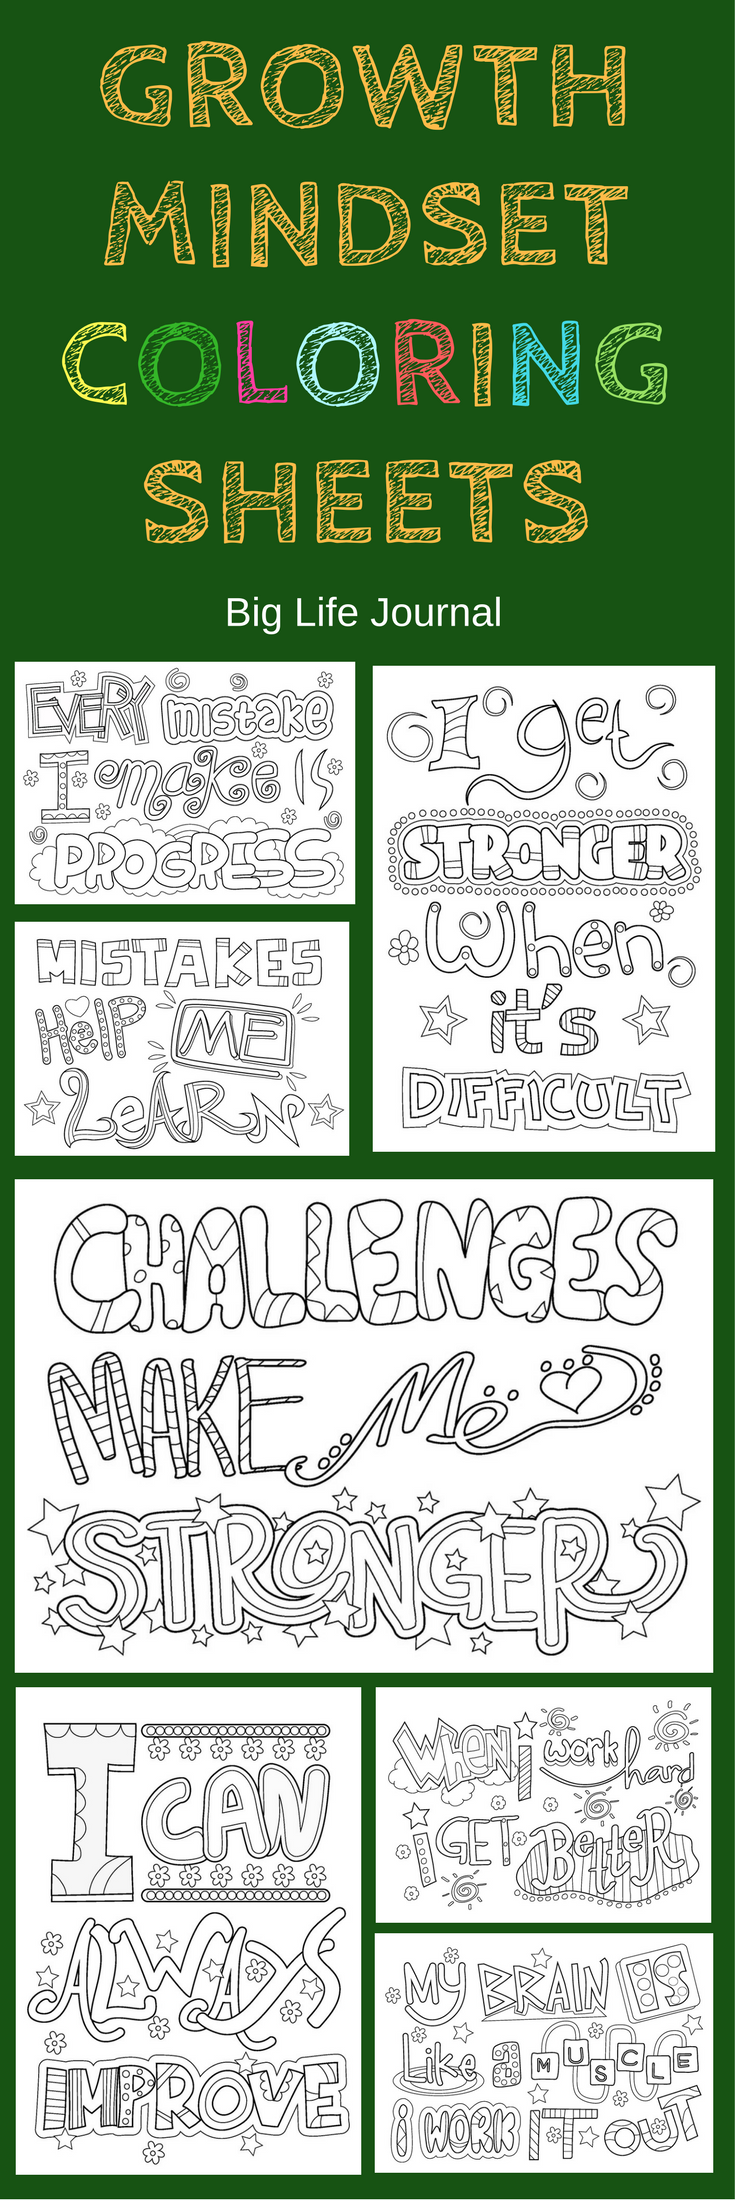 Hardcover | Printable coloring sheets, Growth mindset and Coloring ...